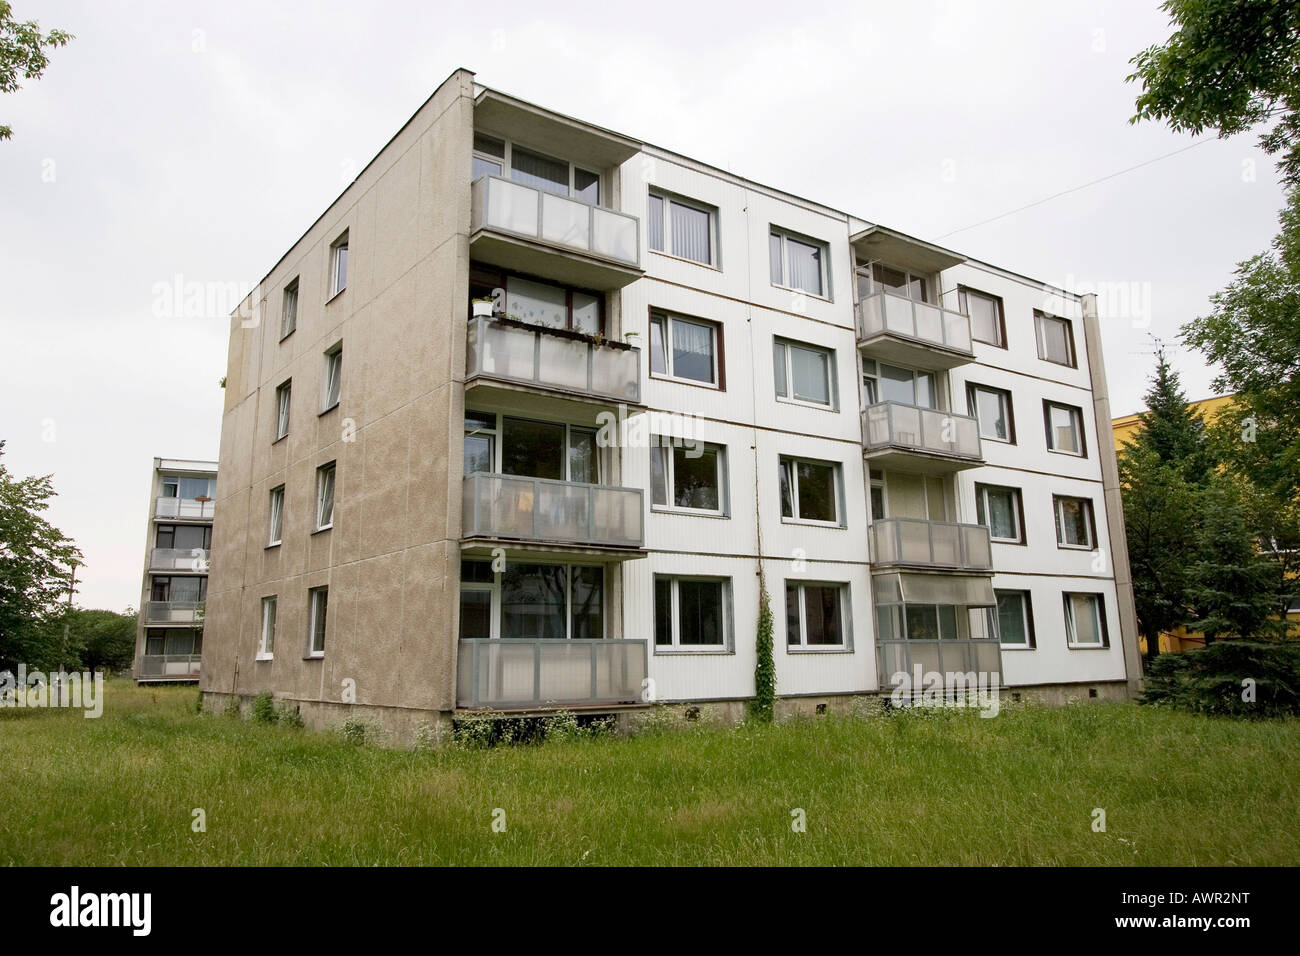 Preconstructed buildings, Chomutov, Czech Republic Stock Photo